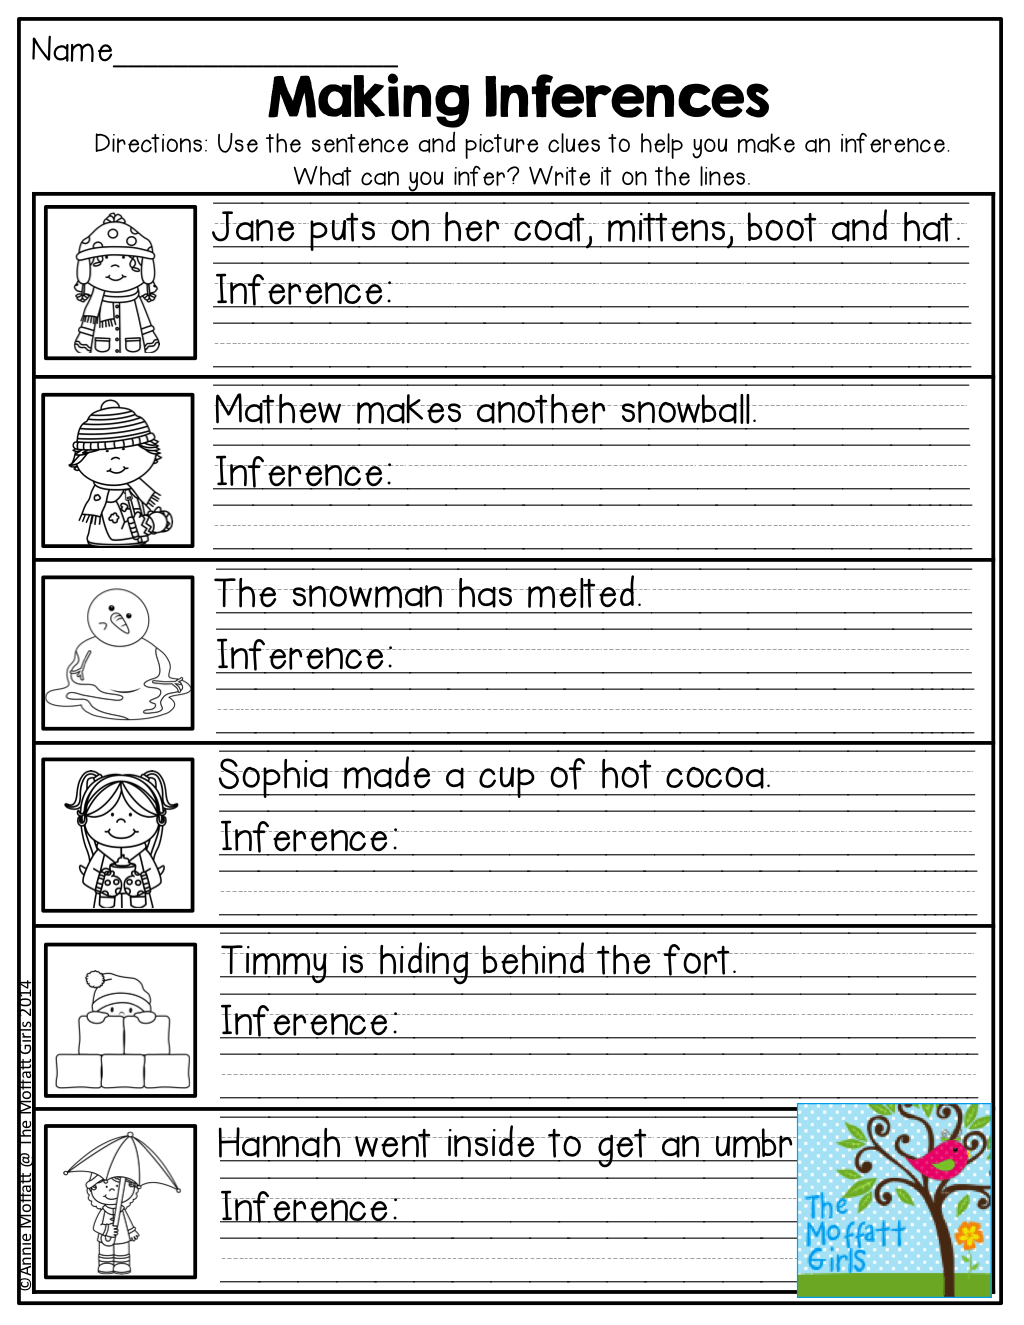 Inference Worksheets 7th Grade